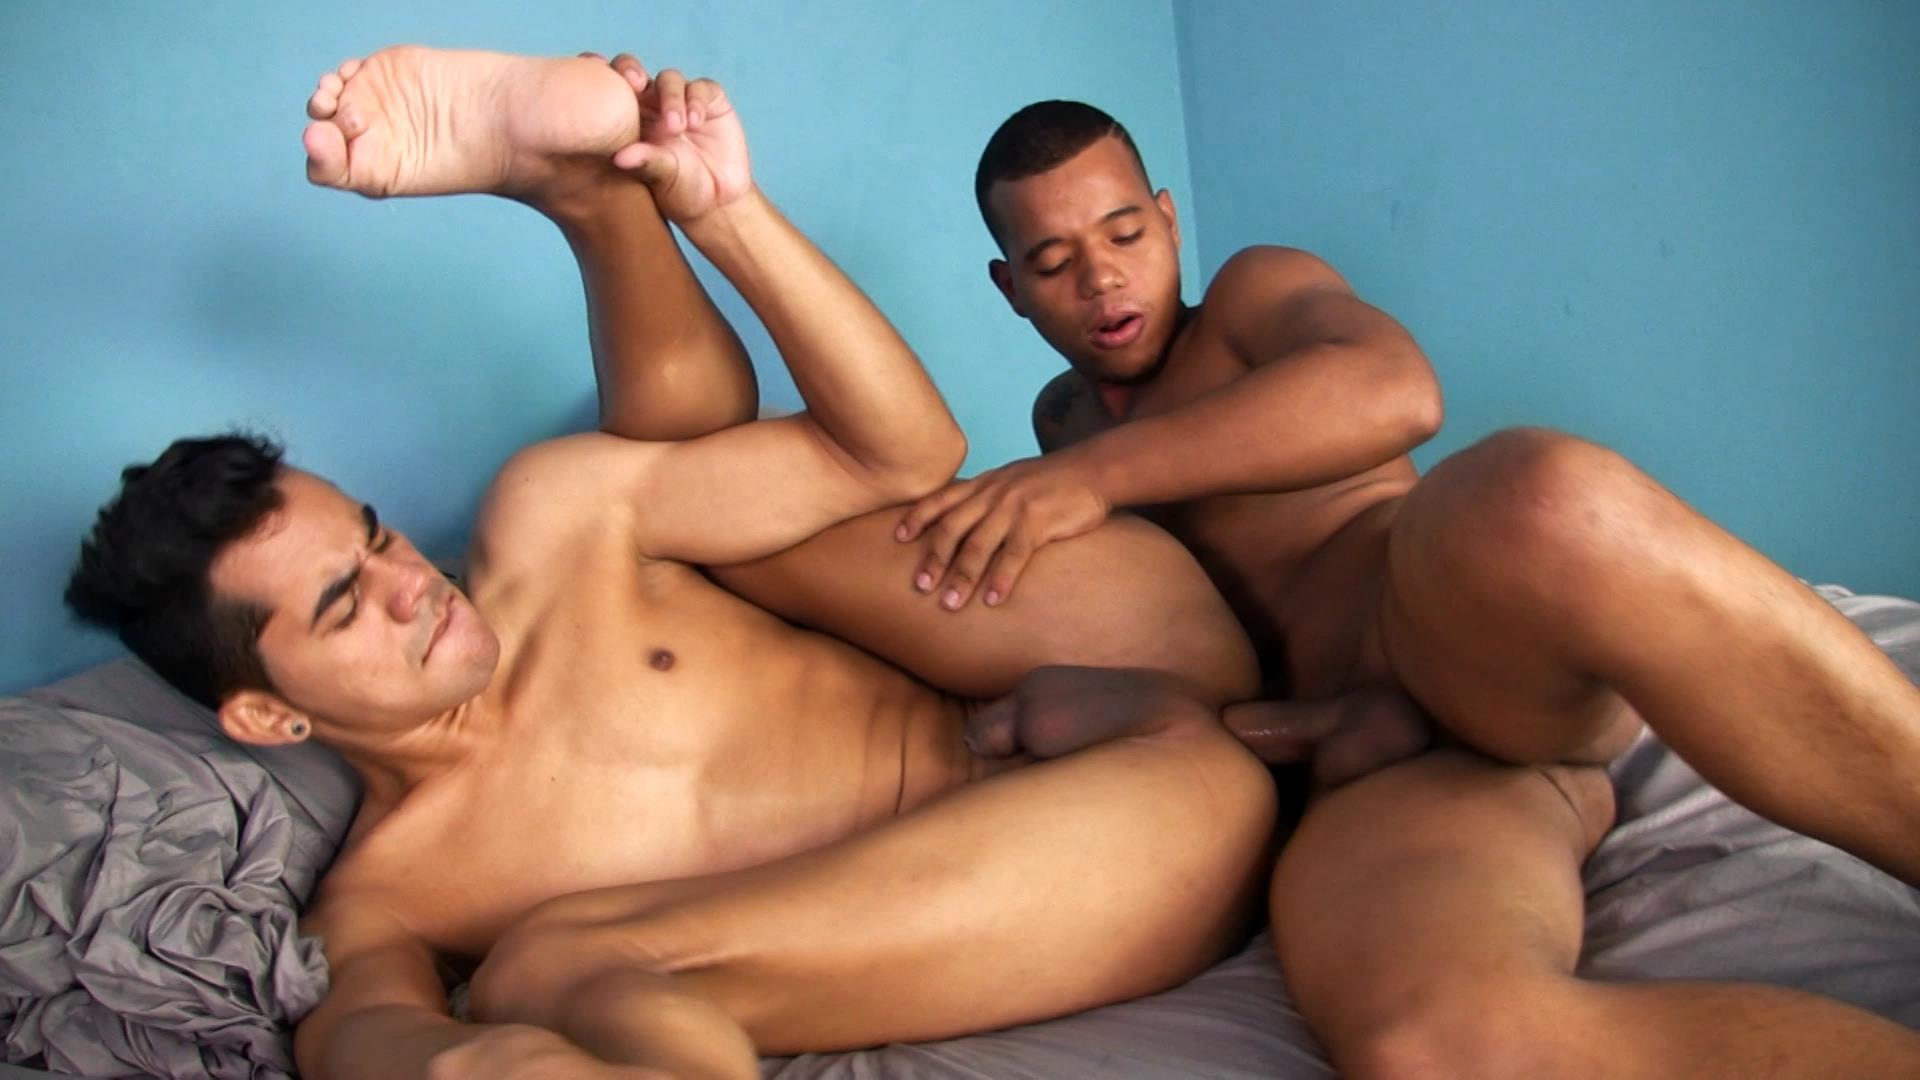 iO-Macho-Latino-Twinks-Bareback-Big-Uncut-Dicks-Amateur-Gay-Porn-13 Aggressive Latino Twink Bareback Breeds His Latin Buddy With His Big Uncut Cock